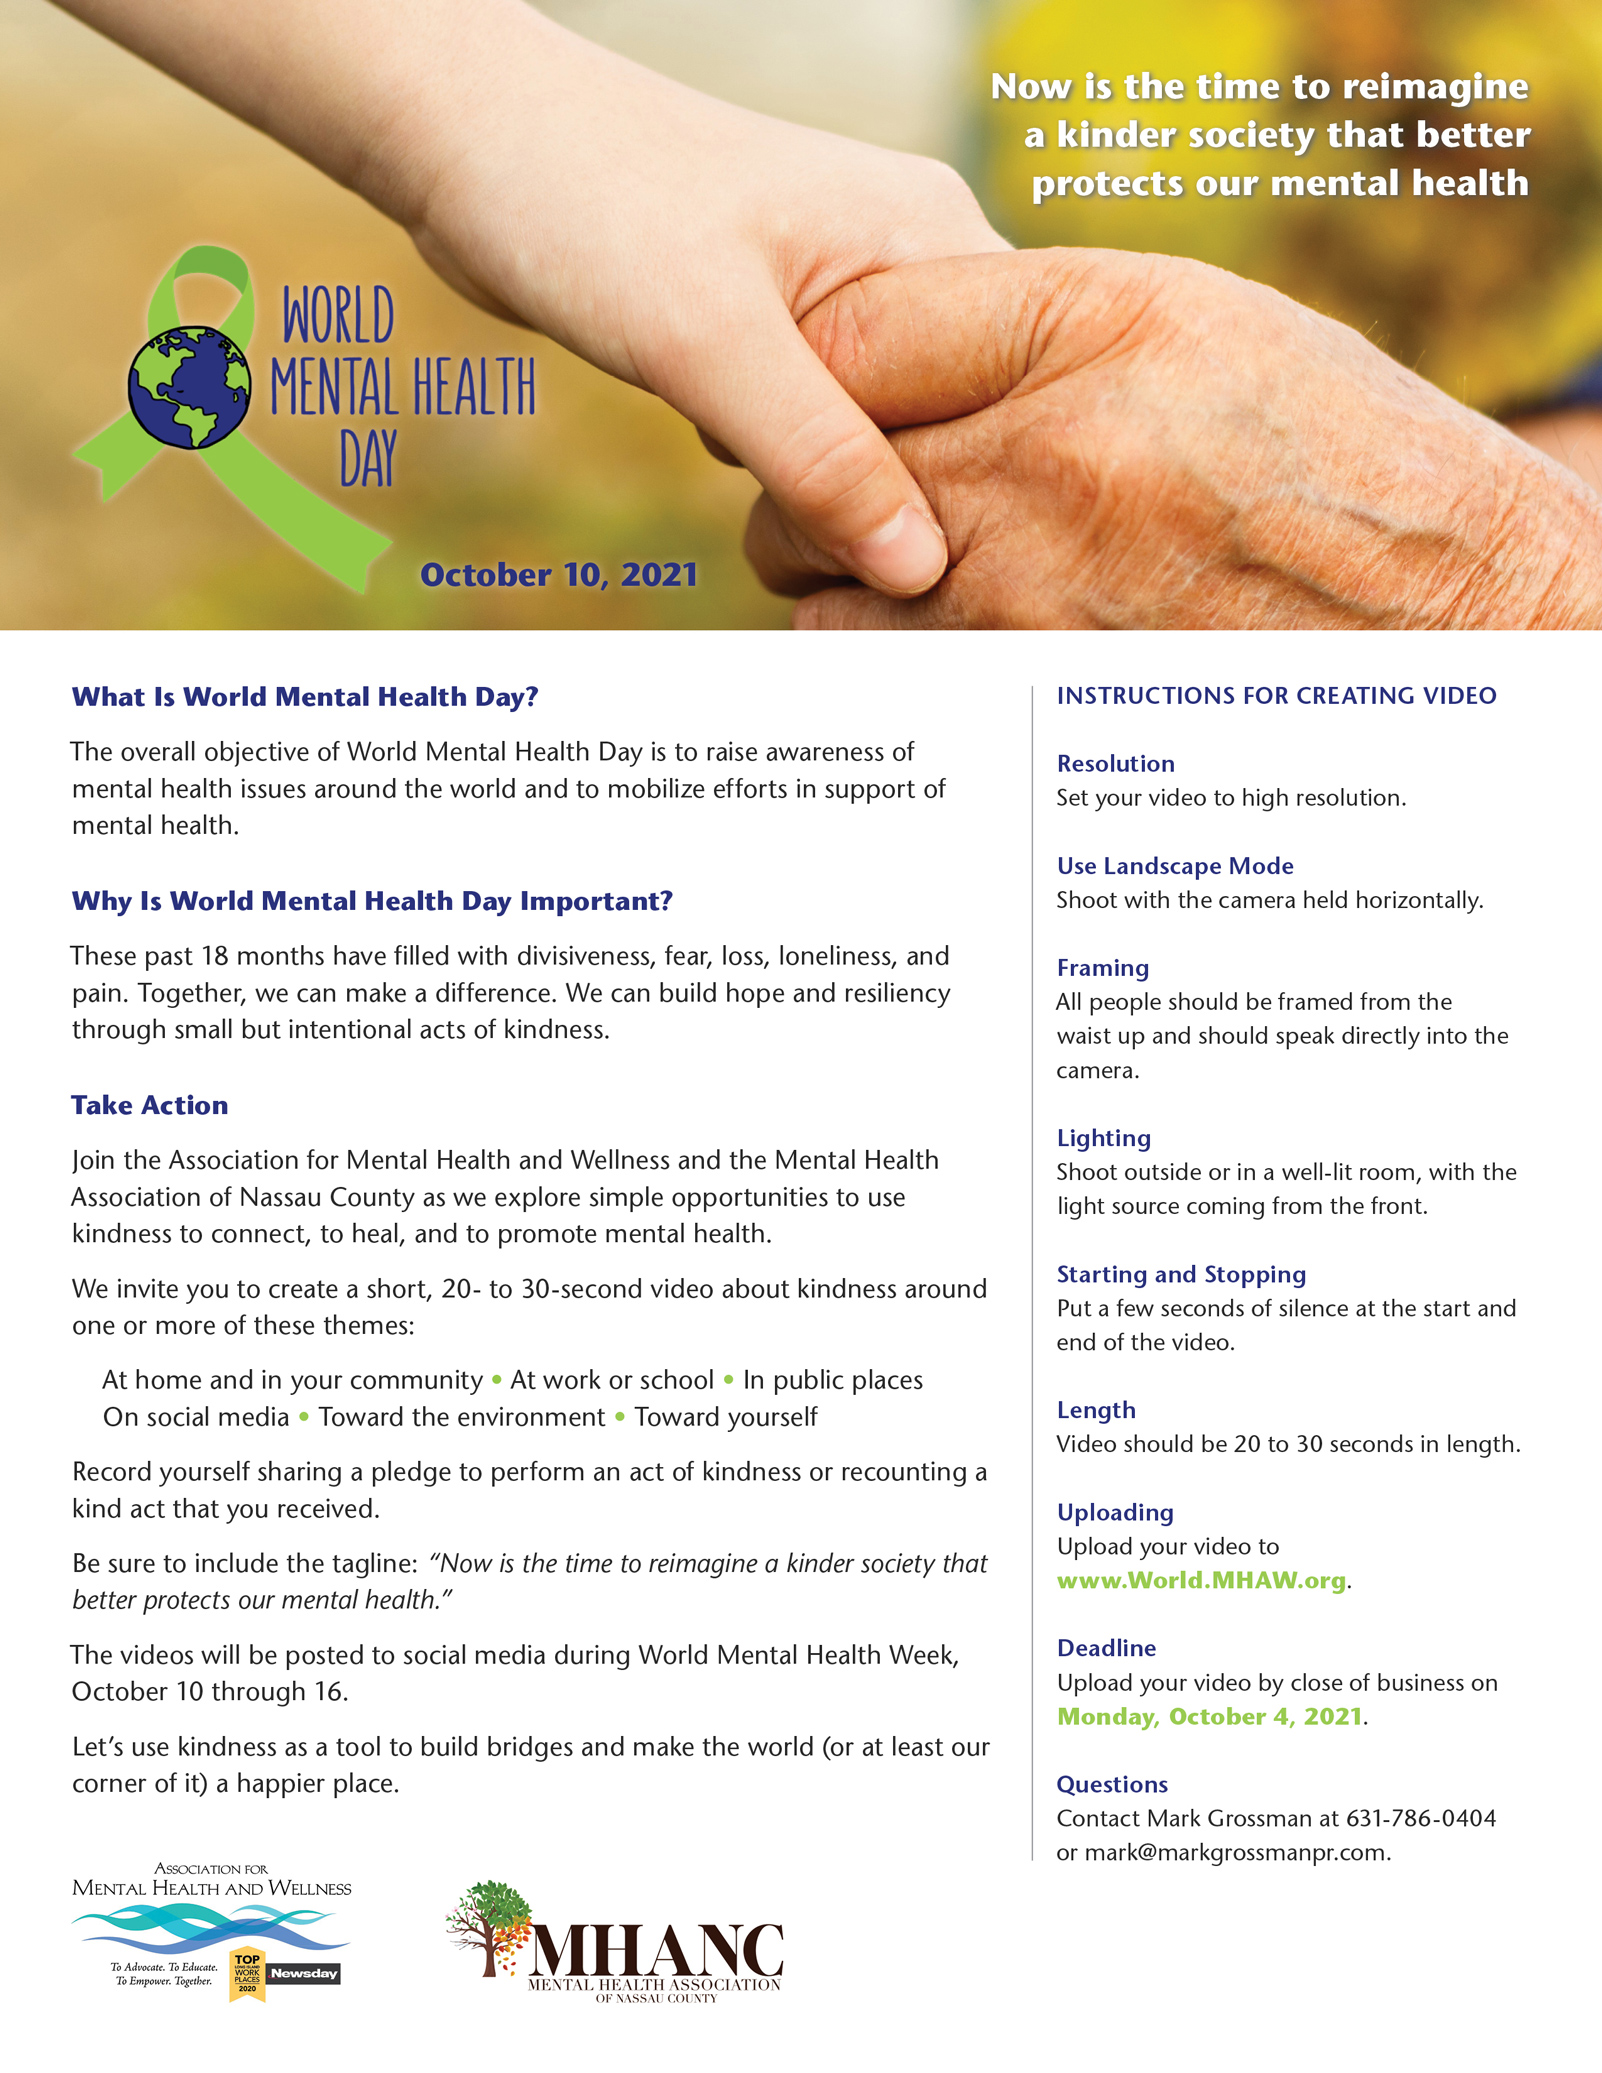 Designer for print ads and flyers, like this flyer for the Association for Mental Health and Wellness.